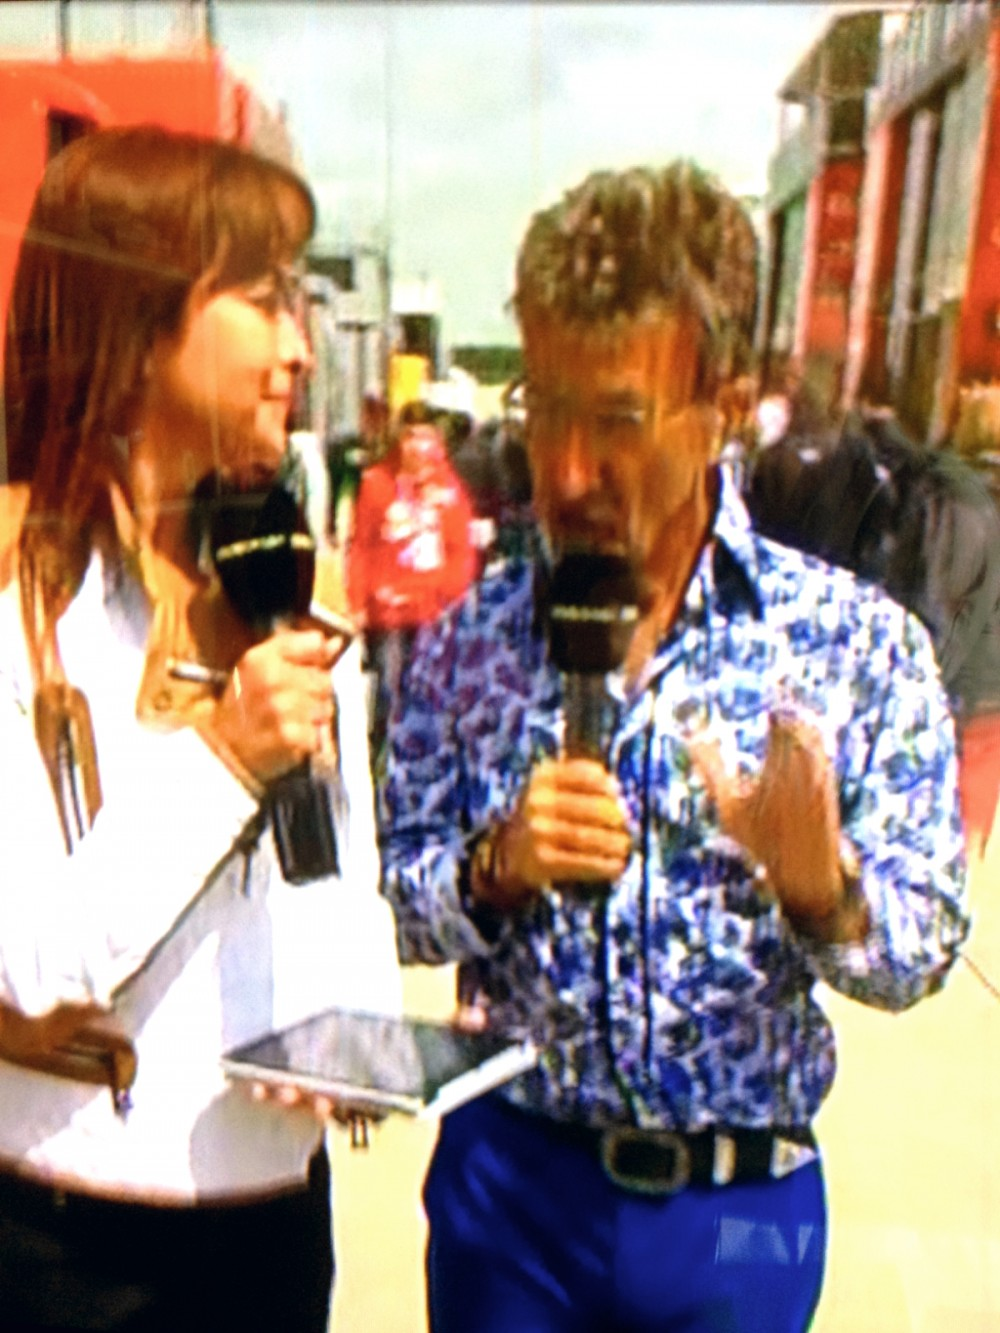 Eddie Jordan and not Bernie Ecclestone was Poppy's 'funny little man'